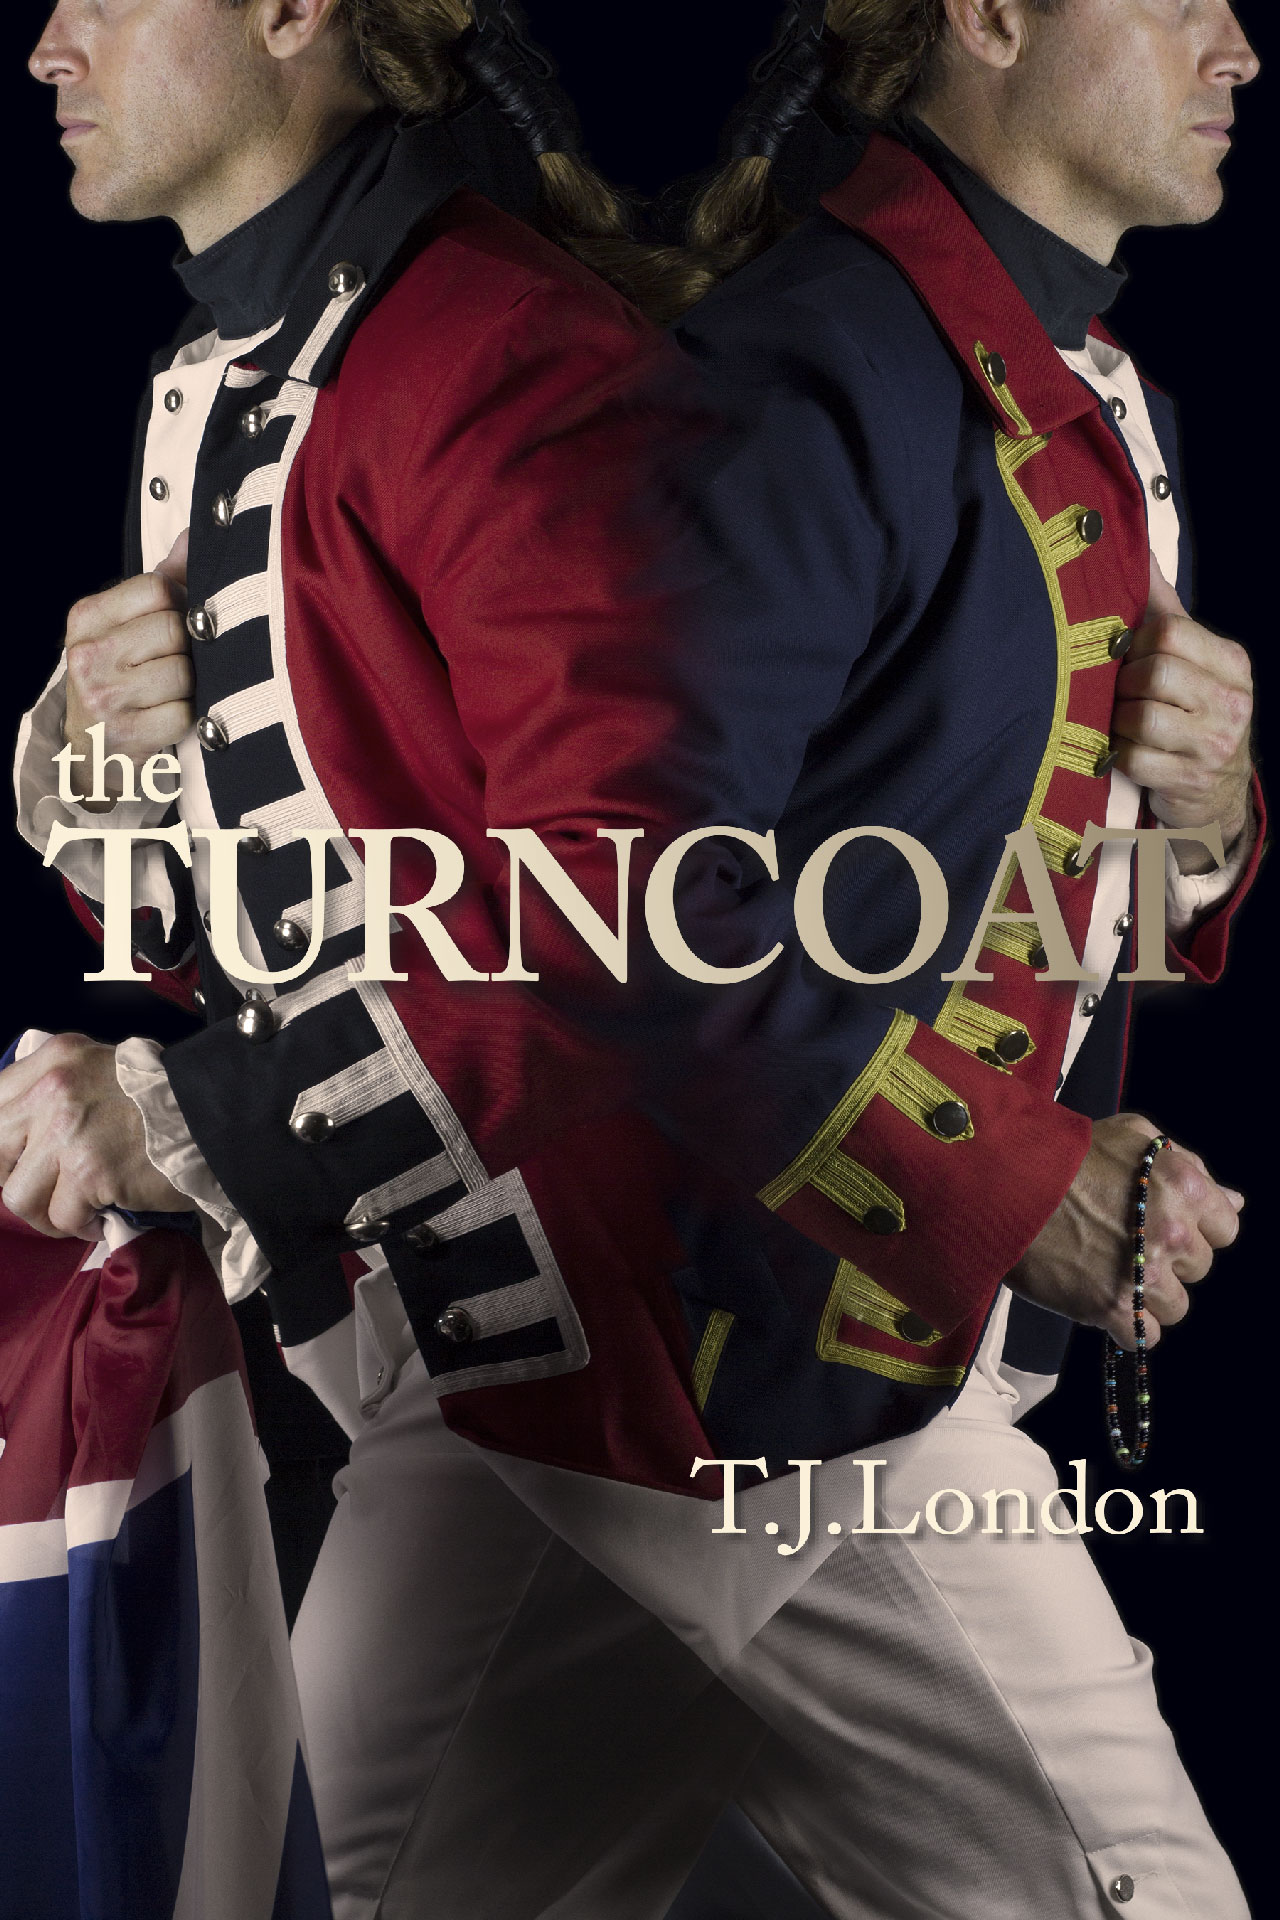 Rebel or Redcoat? - The Turncoat Book #3 in The Rebels and Redcoats Saga. Is on sale, now, on Amazon, Barnes and Nobel, IBOOKS, KoboSpy. Redcoat. Traitor.After Captain John Carlisle's dance with death, he's retreated to the serenity of the Oneida village with his beloved Dellis McKesson, trying to hide from the inevitable truth that war is coming. But when duty calls and John's expertise is needed to negotiate a treaty between the Six Nations of Iroquois and the Crown, he'll once again be faced with a decision: his King or his conscience.Many secrets have yet to be revealed, and a deal with the Devil made in desperation, threatens to ruin Dellis and John's hard-won love. As ghosts of the past resurface, and bitter family rivalry exposes betrayal from those closest to her, Dellis is dragged down a devastating path to the truth of her parents' murders.Now, the die is cast as war comes to the Mohawk River Valley in the Summer of 1777. St. Leger and his native allies siege Fort Stanwix. The British are planning a secret attack that will force the Rebels and the Oneida to face off against the Crown and their loyal allies, further dividing John's loyalties, leaving him on the precipice of a decision: Rebel or Redcoat?